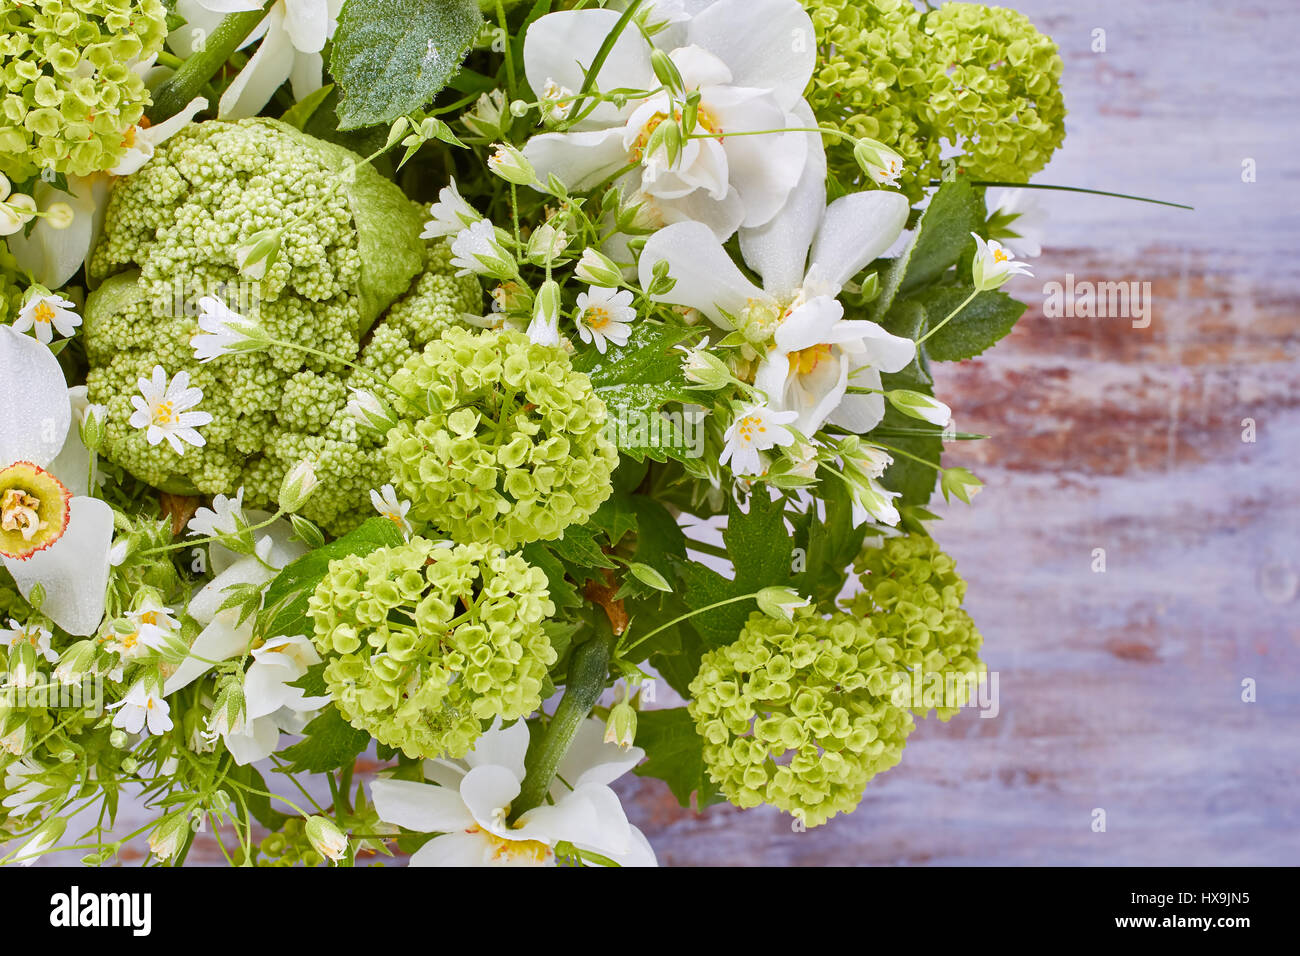 Close up of various fresh spring flowers stock photo 136665905 alamy close up of various fresh spring flowers mightylinksfo